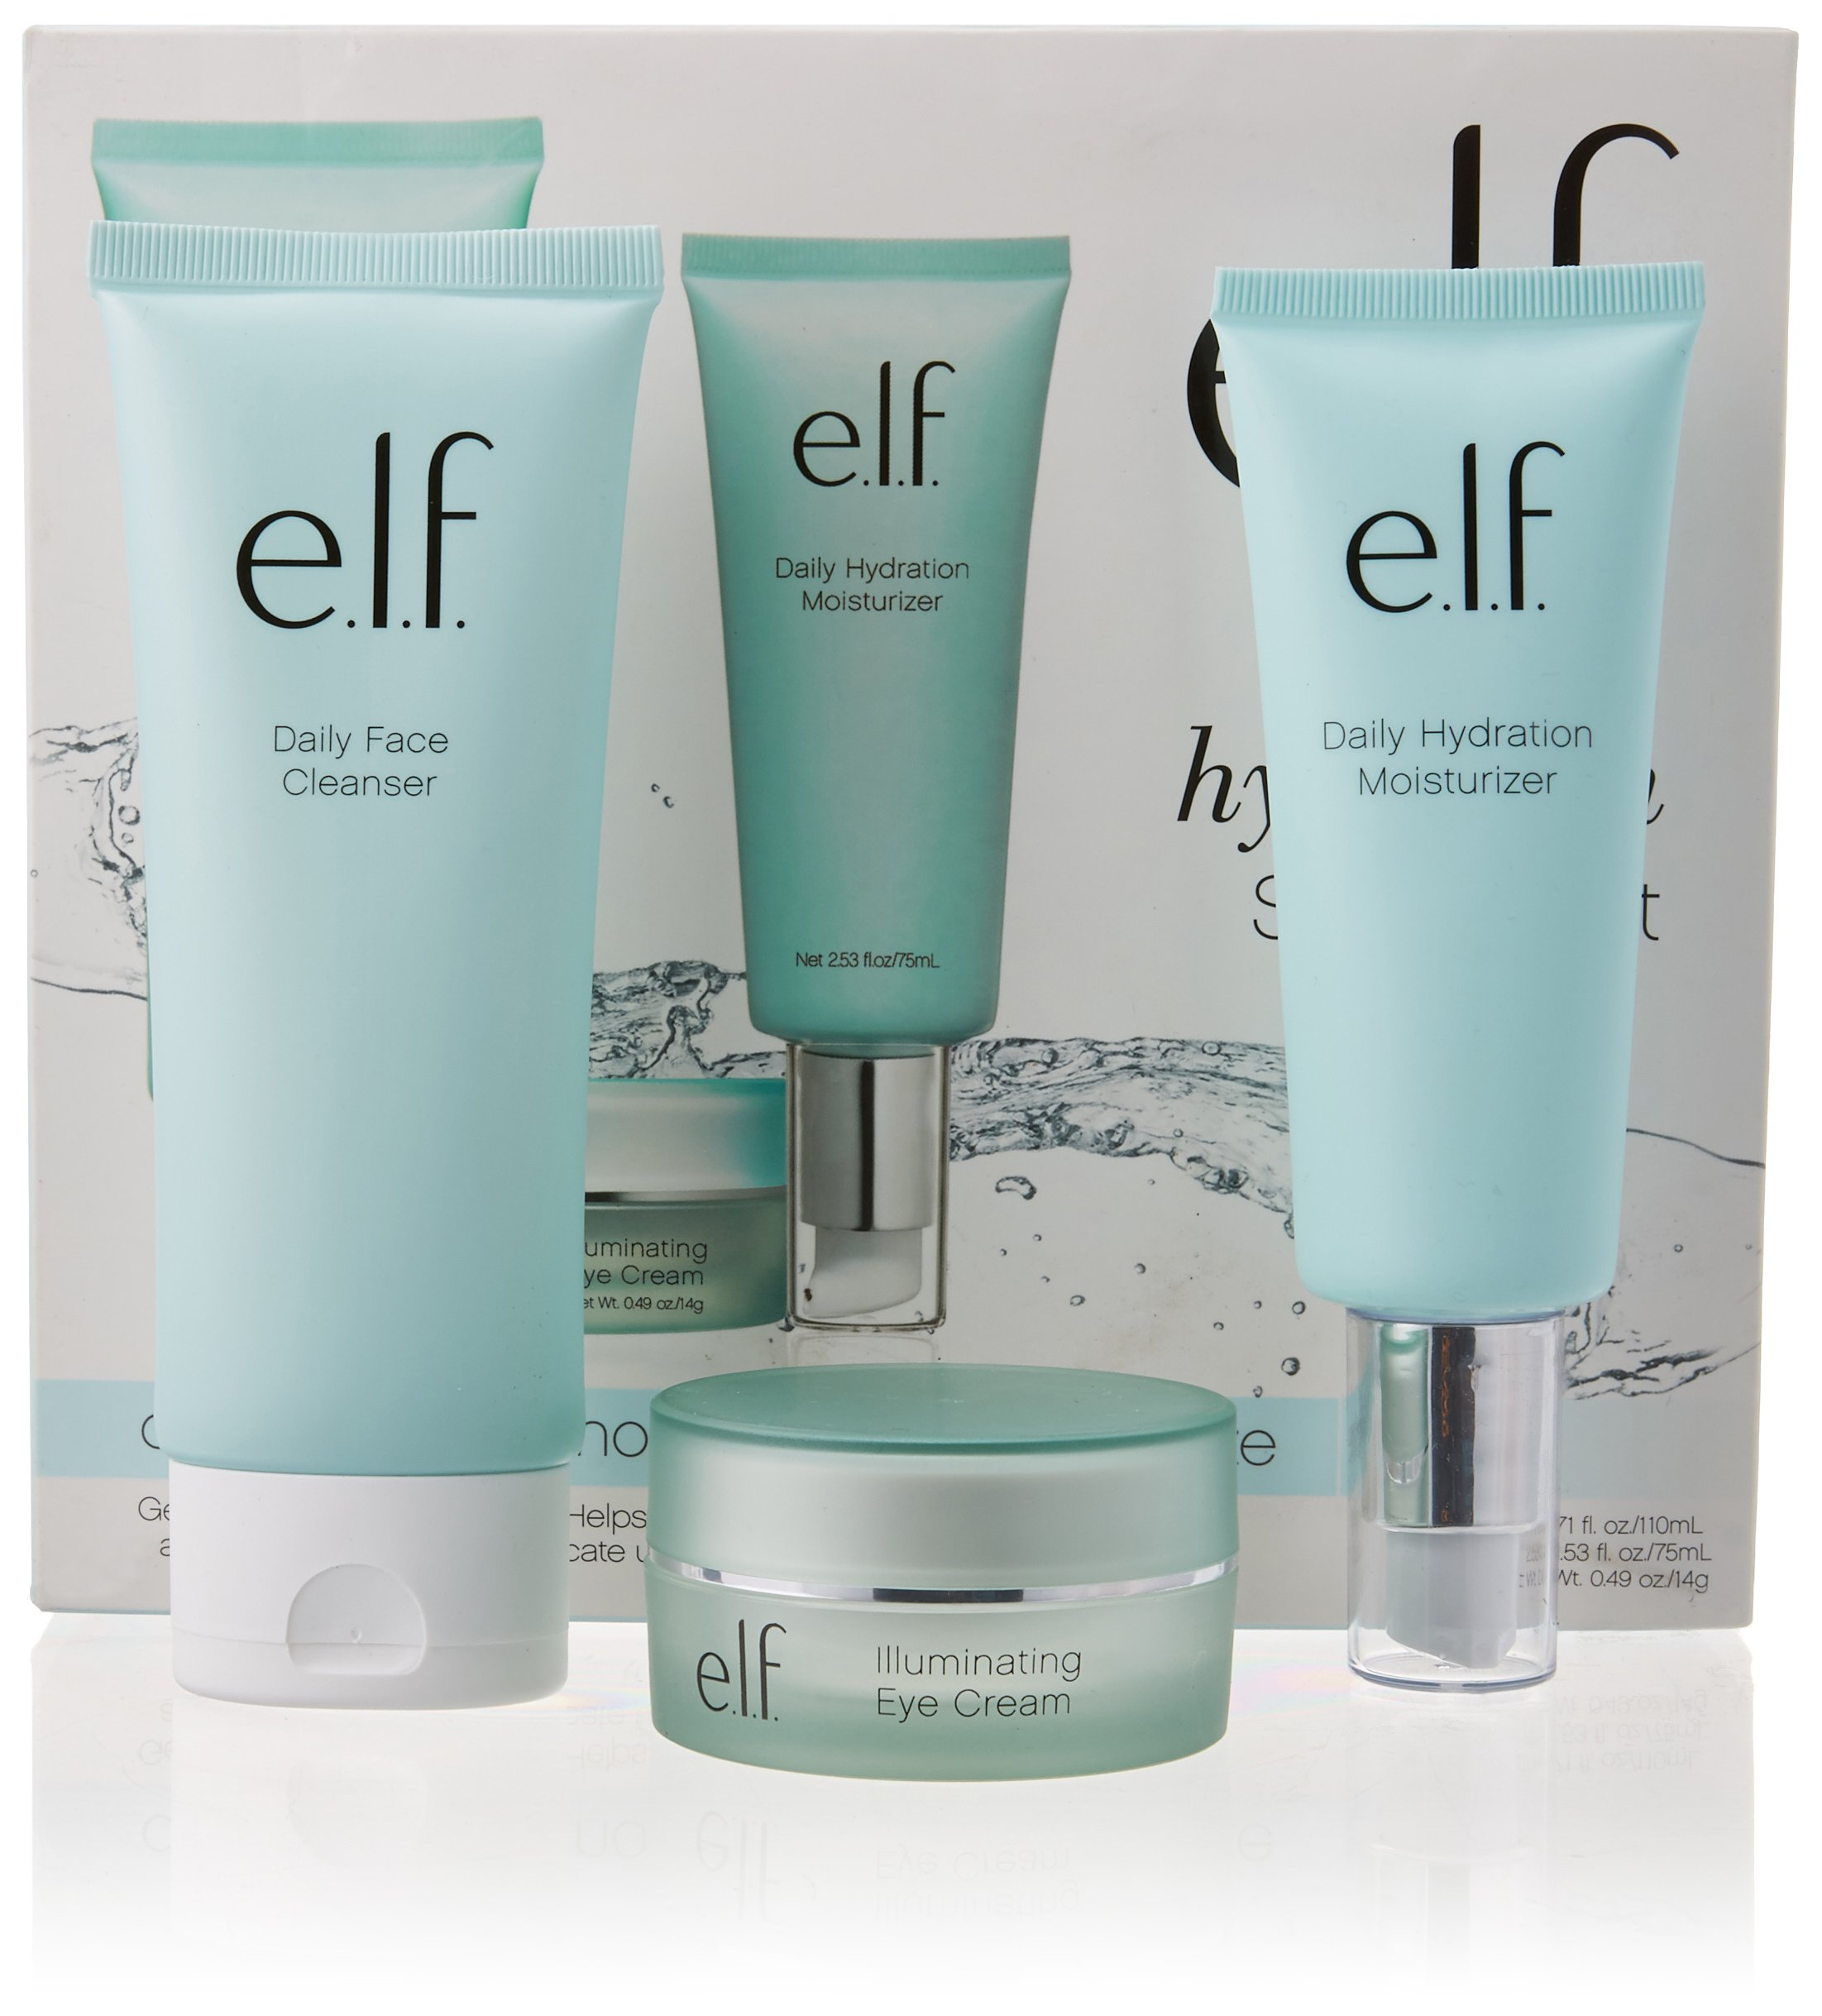 e.l.f. Cosmetics Skincare Starter Kit, Cleanse, Nourish and Moisturize Skin with Three Hydrating Products by e.l.f. Cosmetics